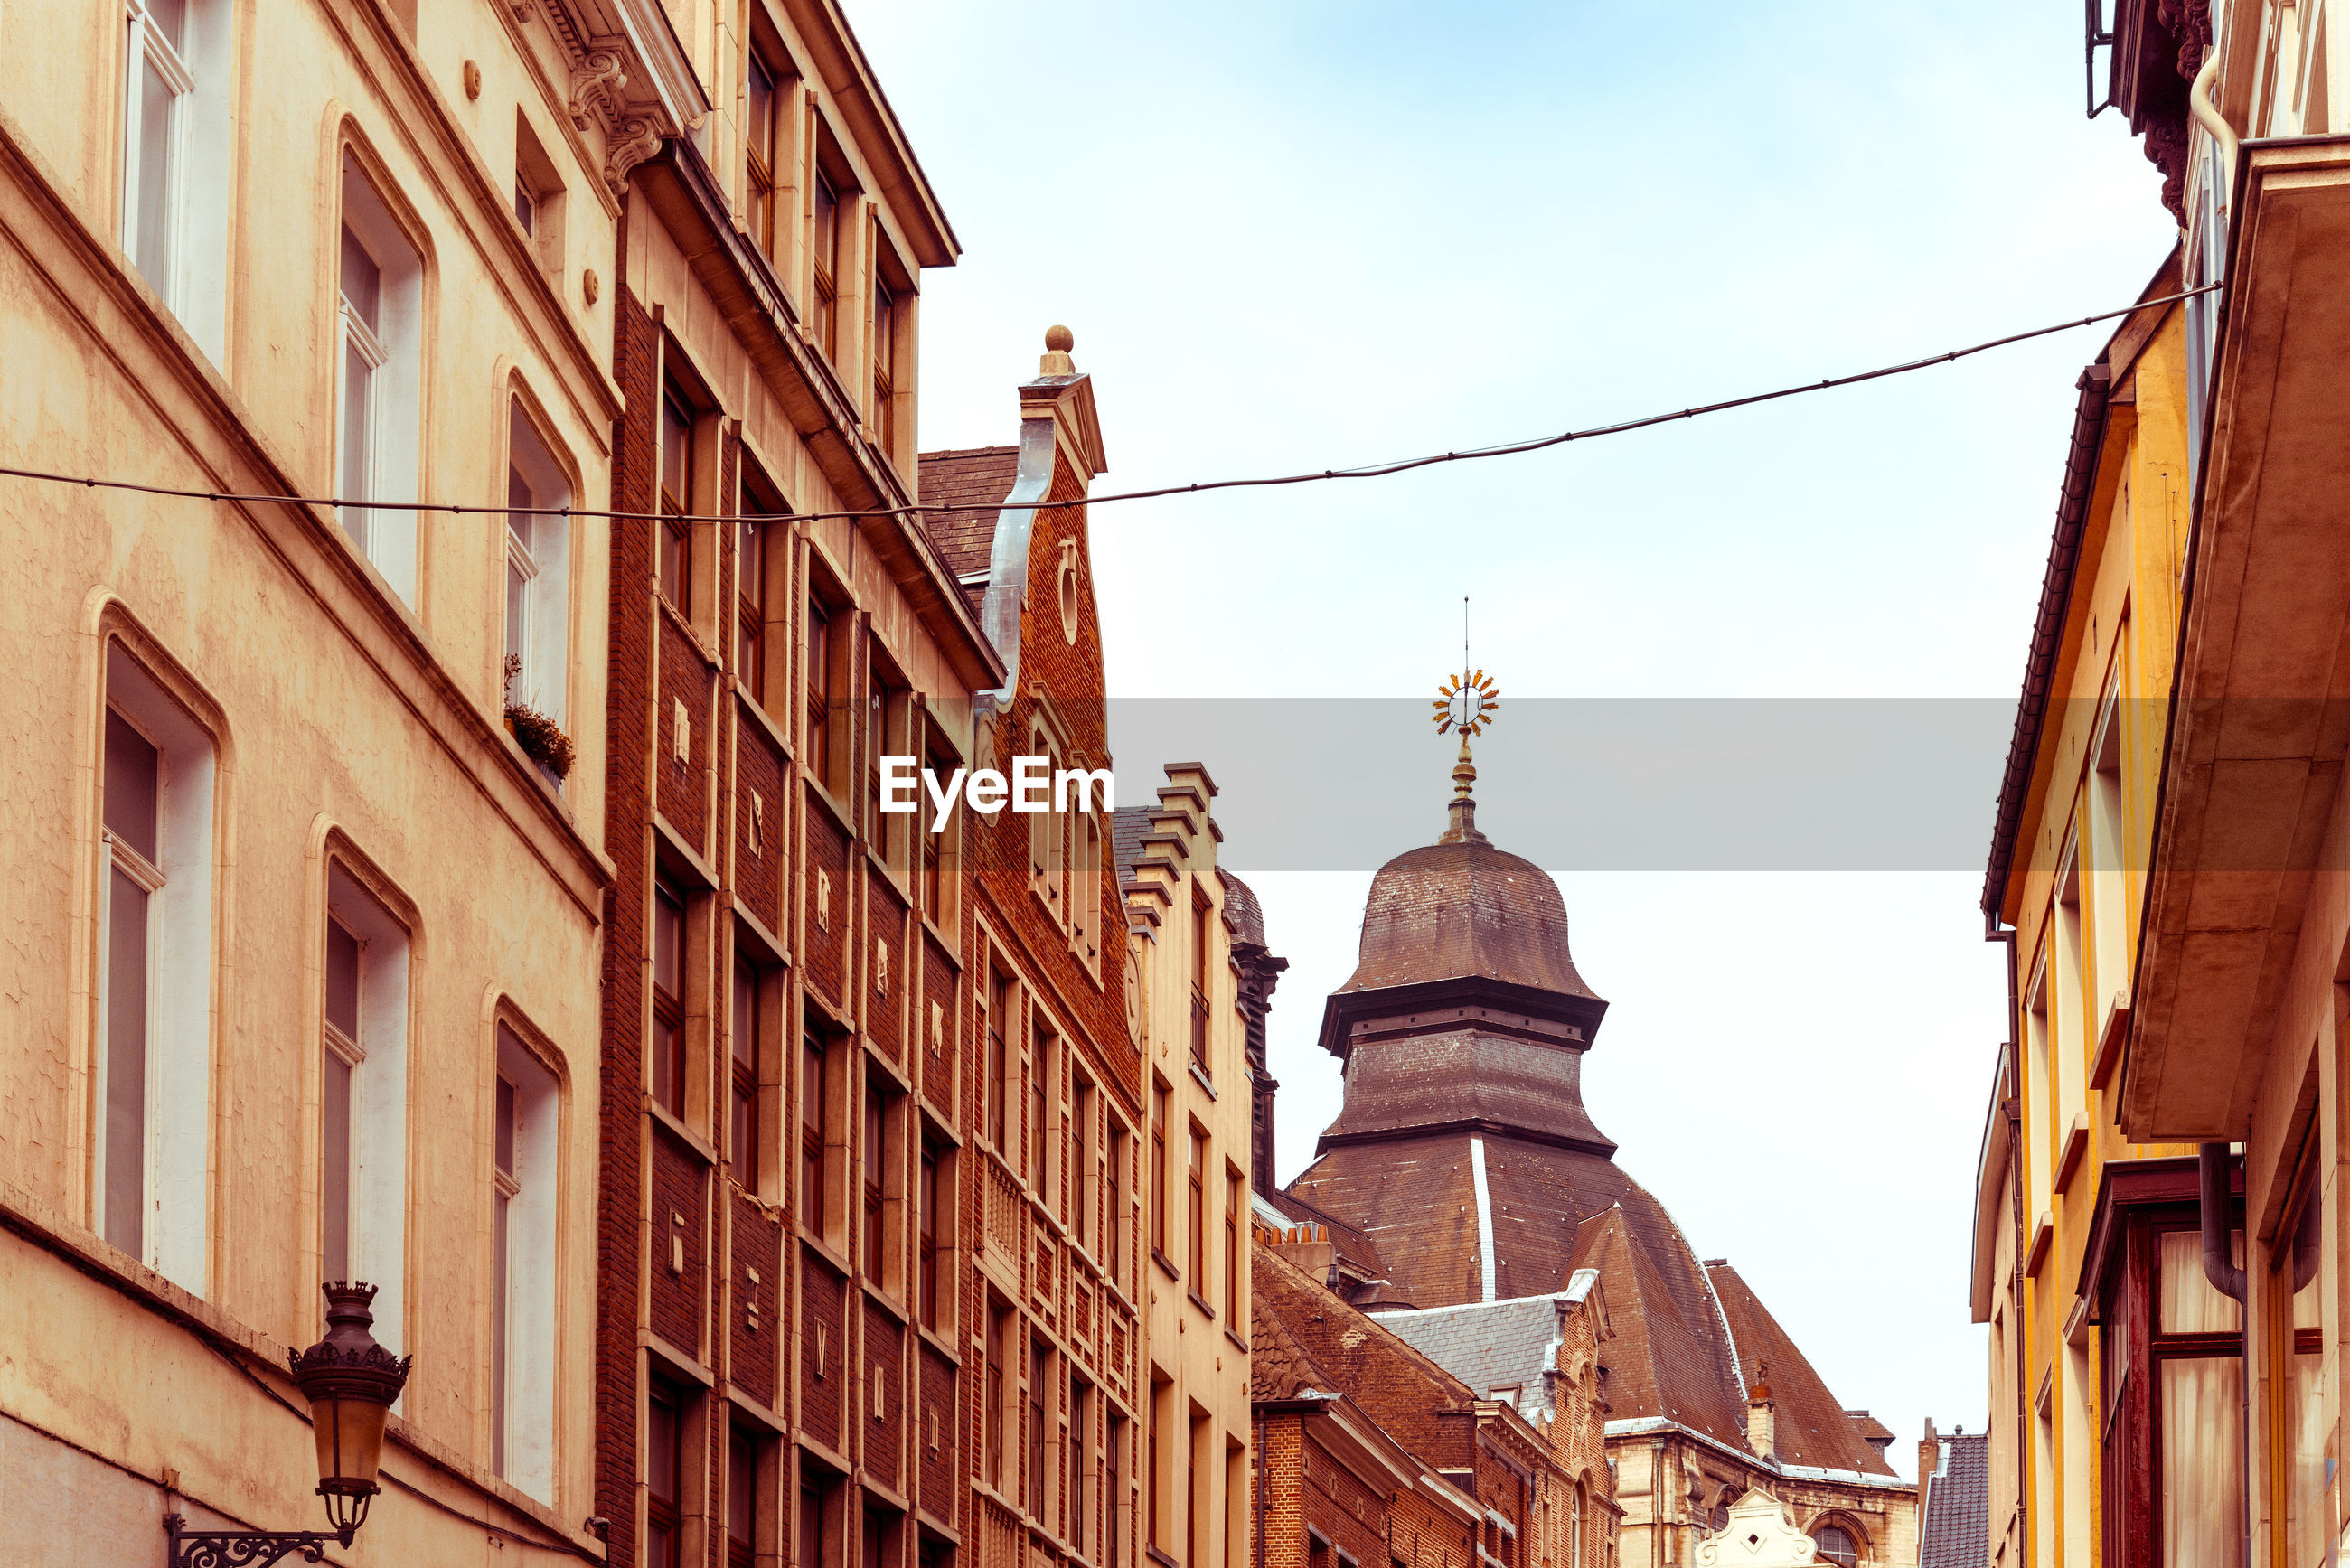 Low angle view of church by buildings in city